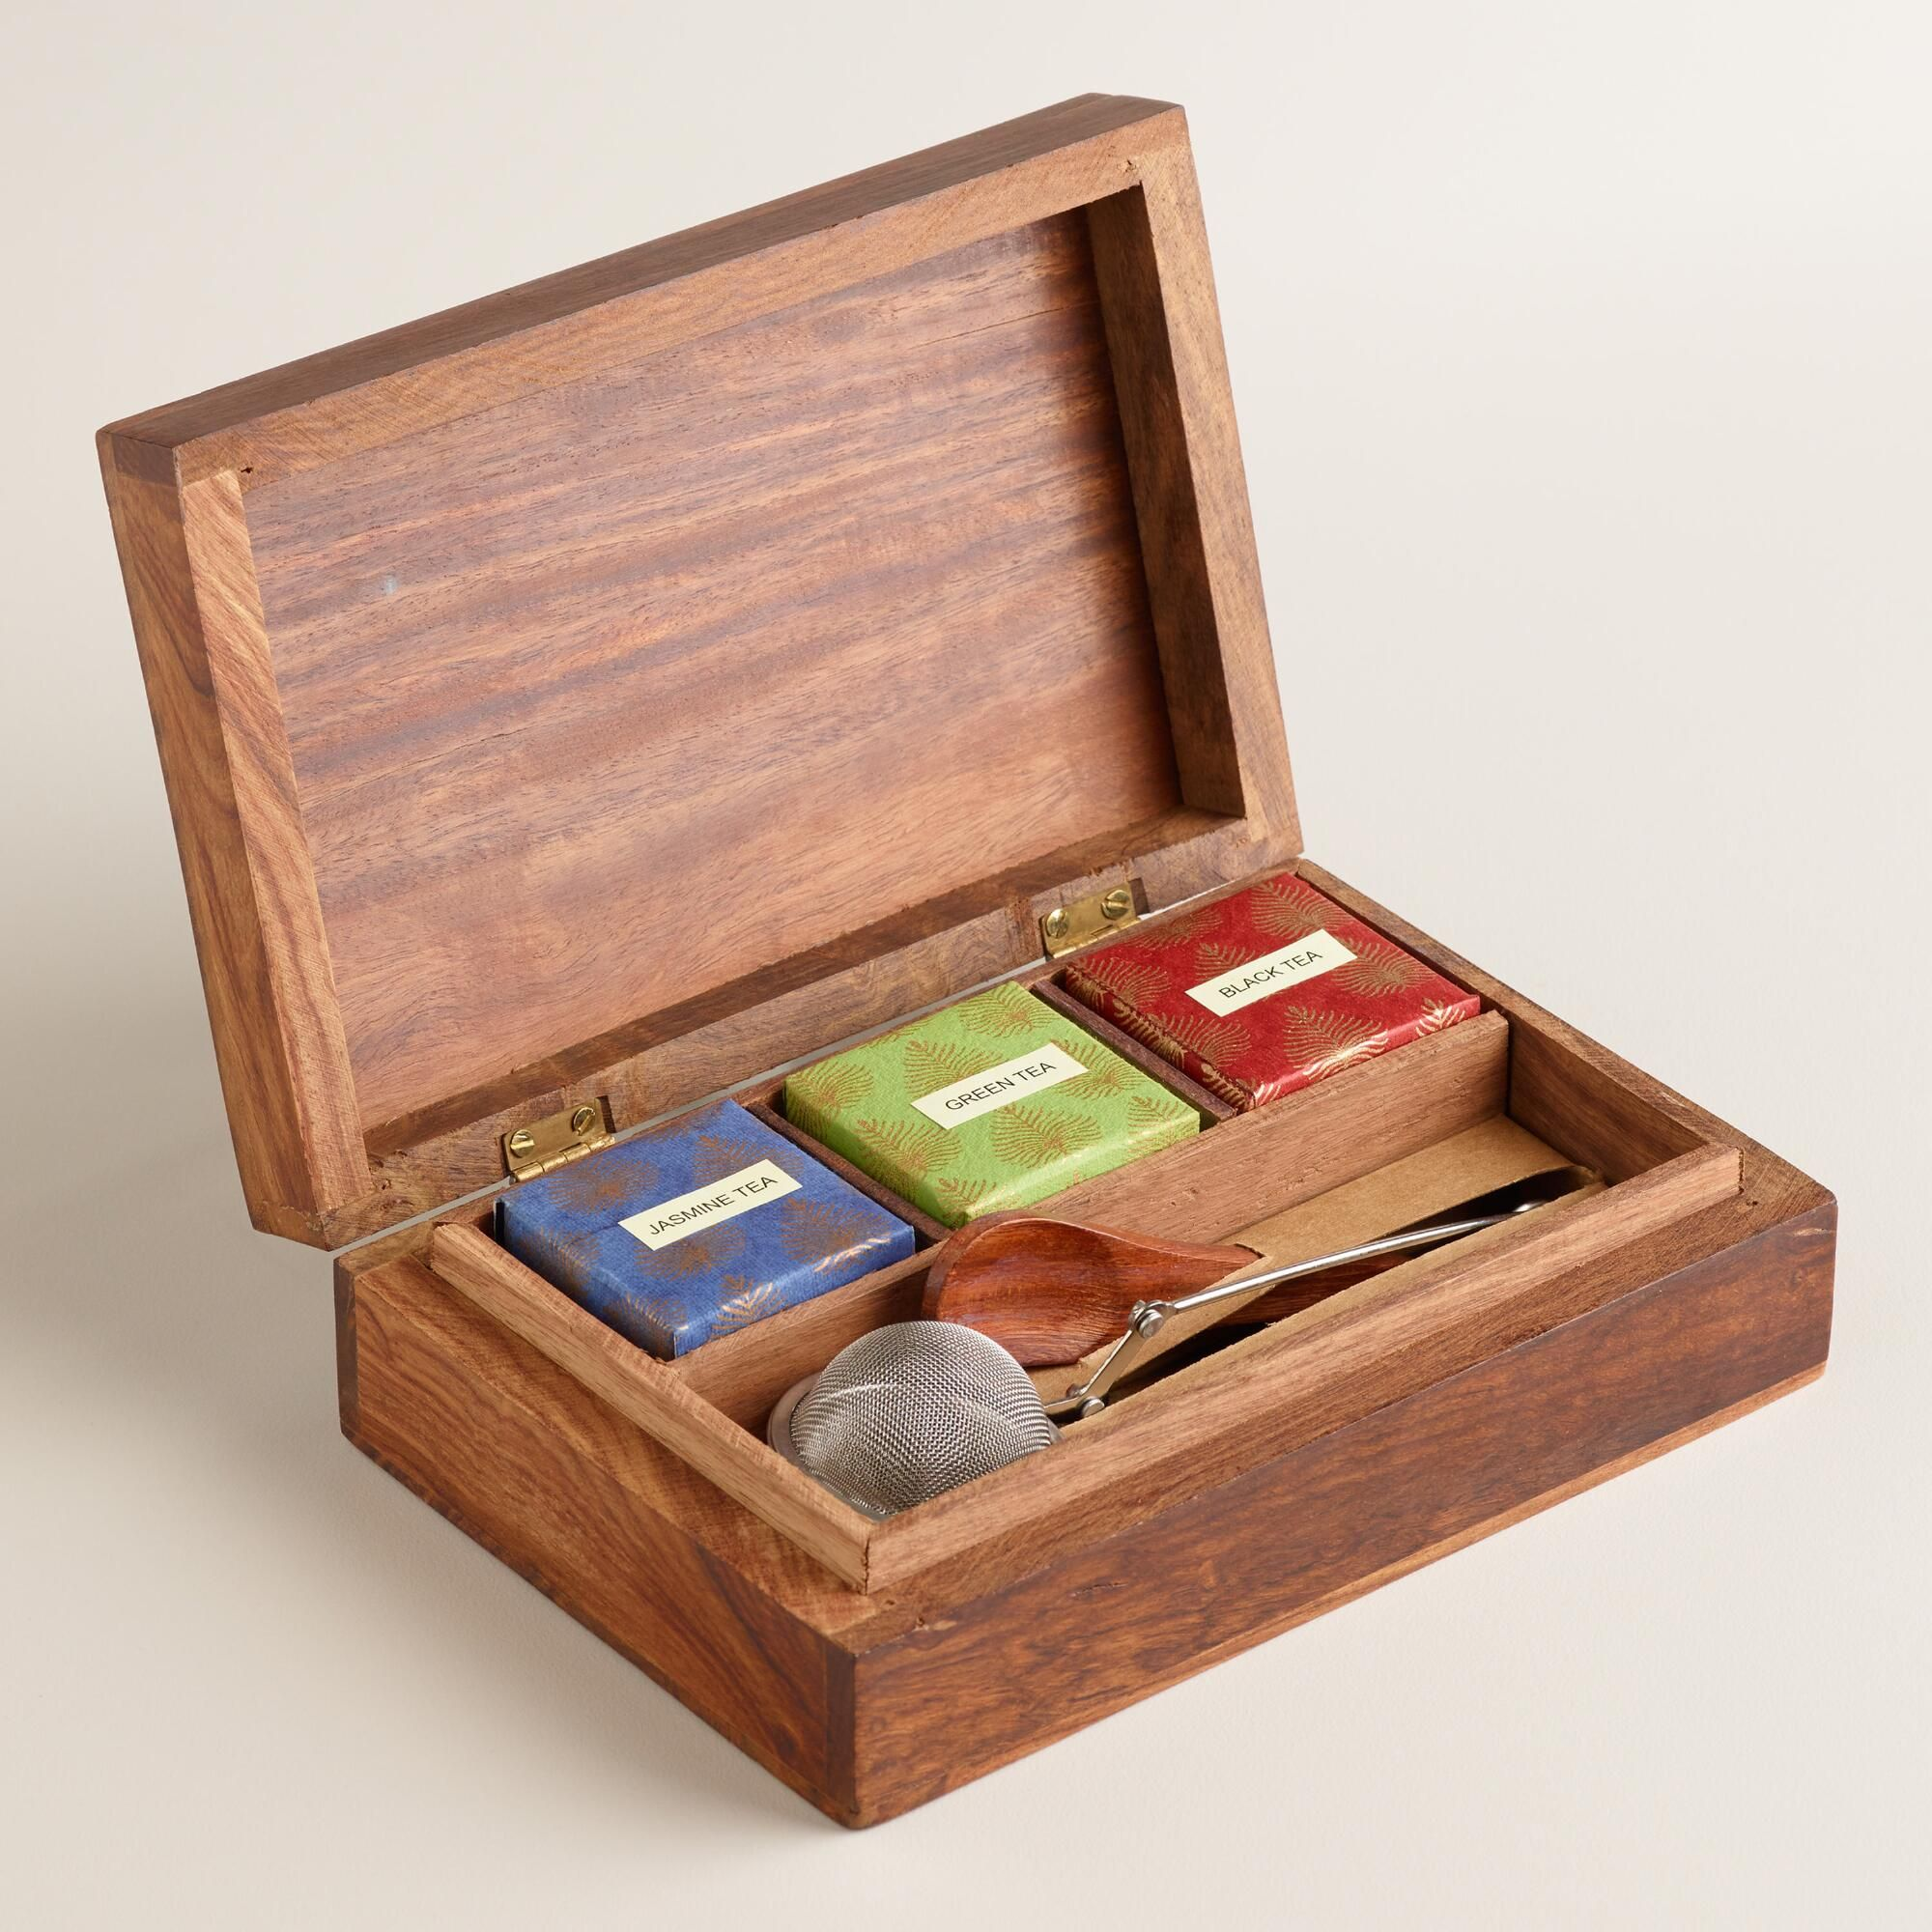 Merveilleux Our Exclusive Chinese Tea Service Gift Set Includes Jasmine, Black And  Green Loose Leaf Teas Inside A Beautiful Wooden Storage Box With An  Intricate, ...